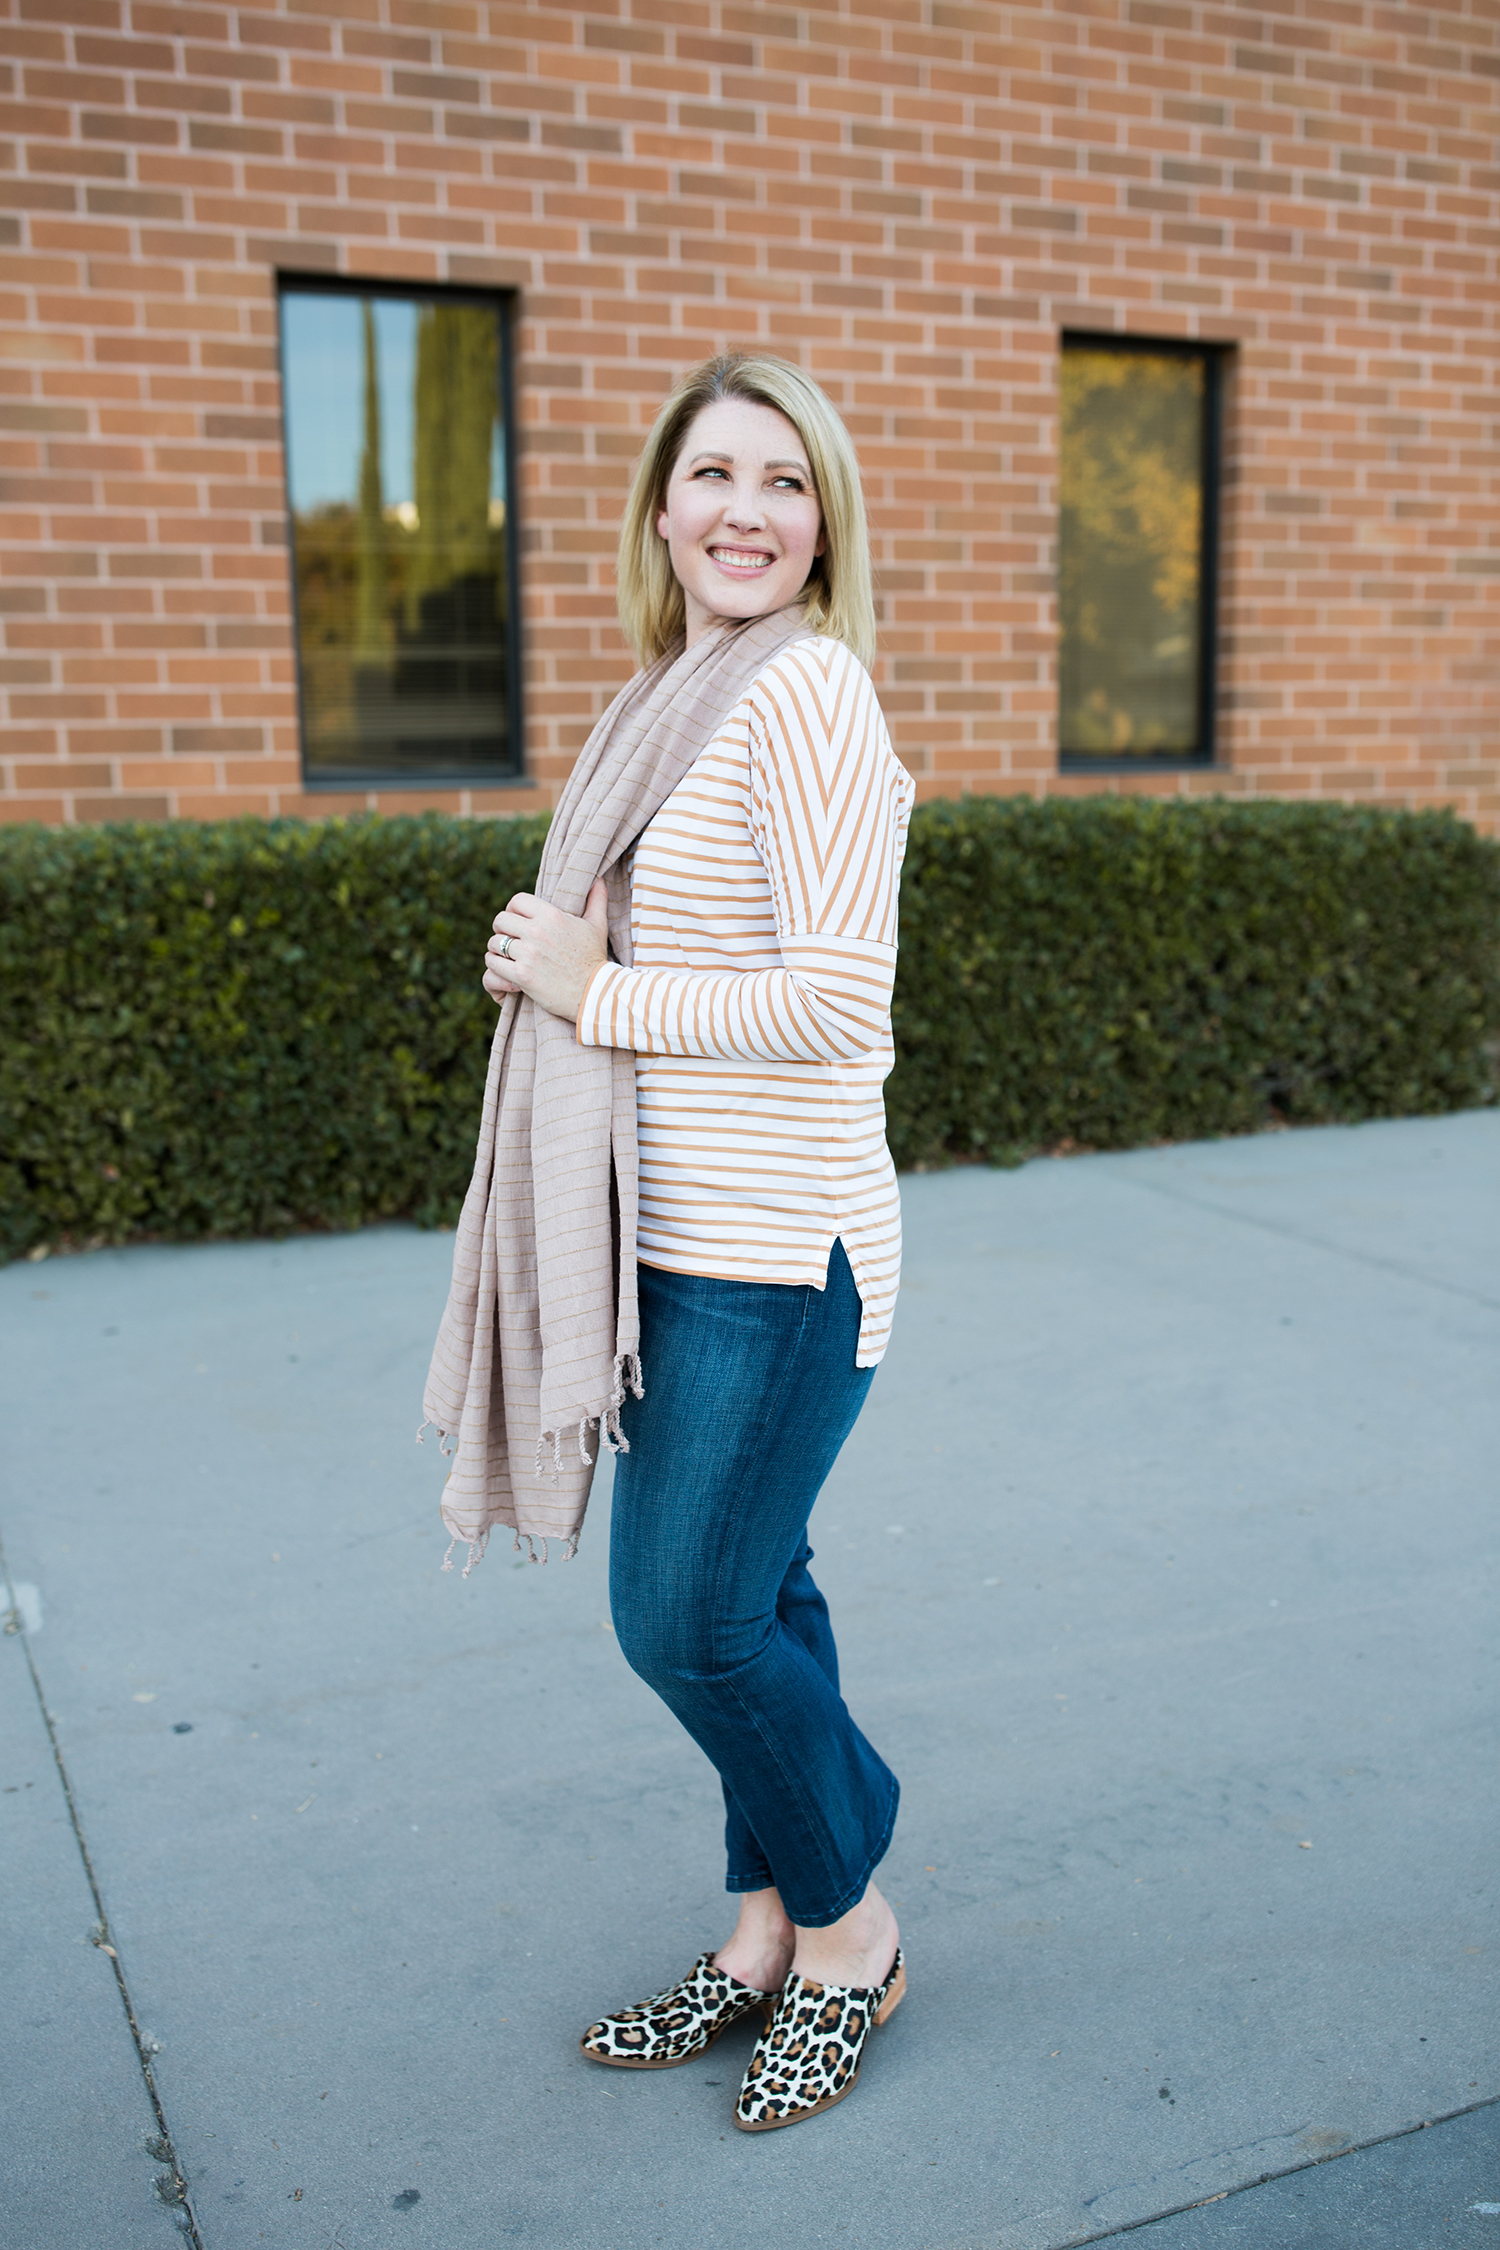 Fall Shoes: How to Wear Mule Shoes in your Fall Outfits